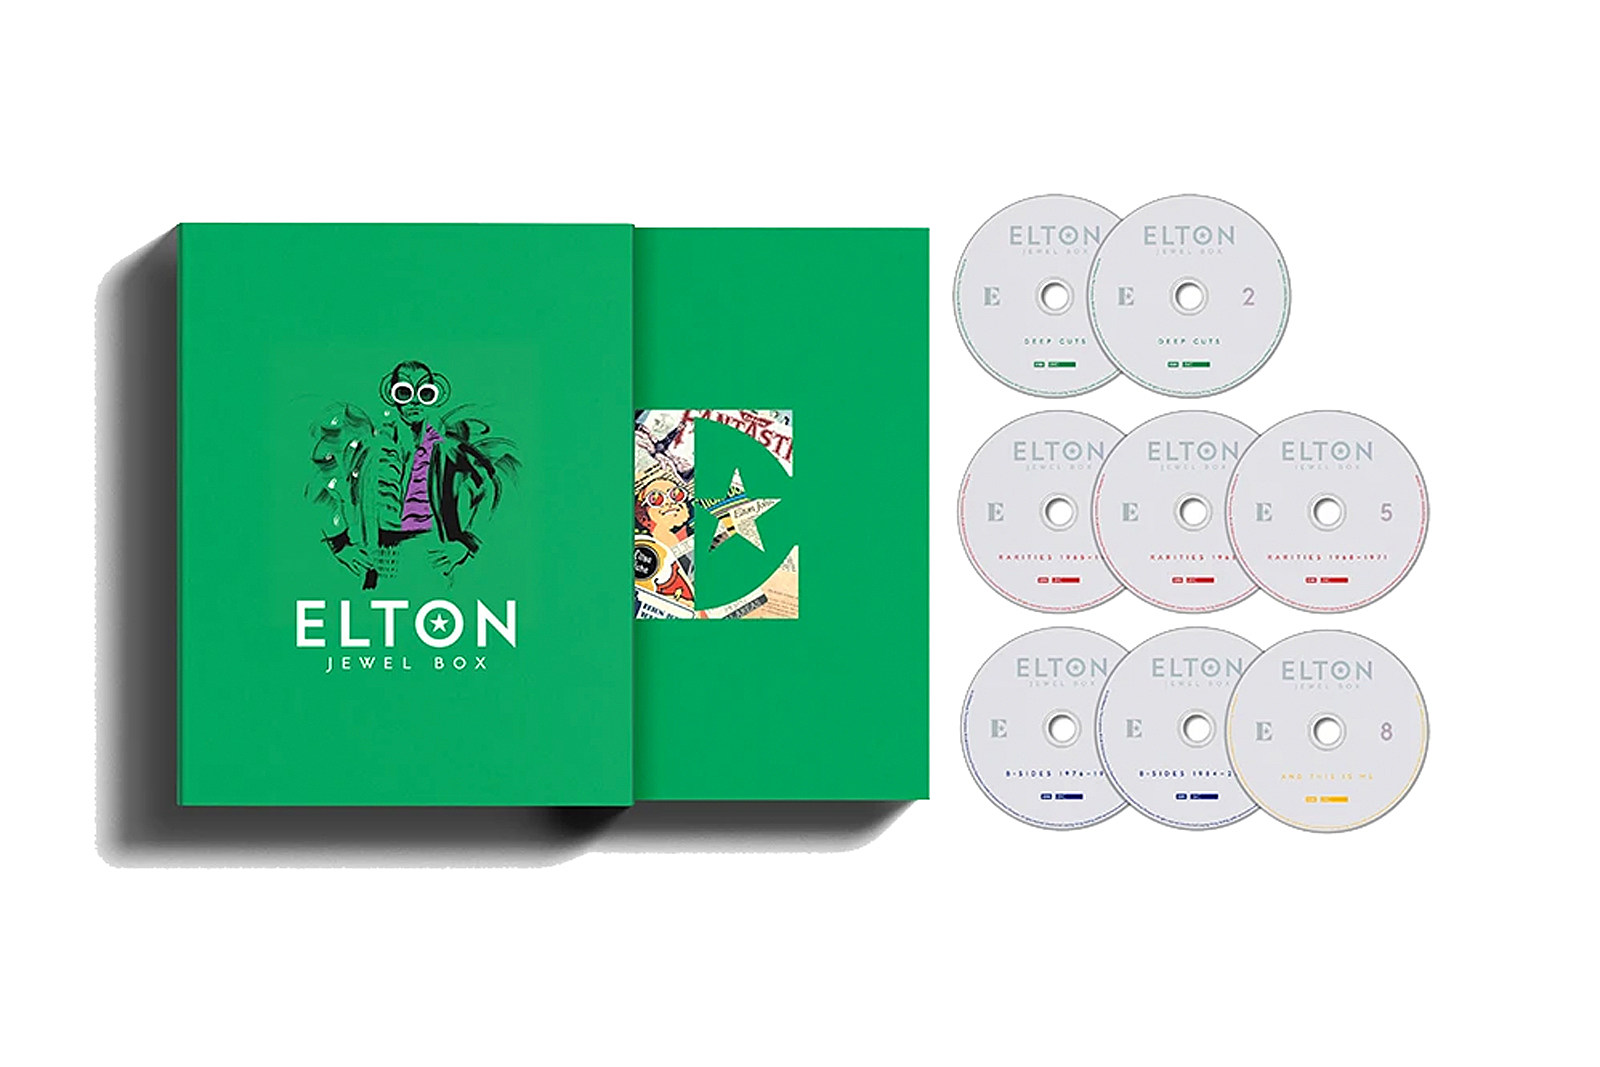 Elton John Jewel Box